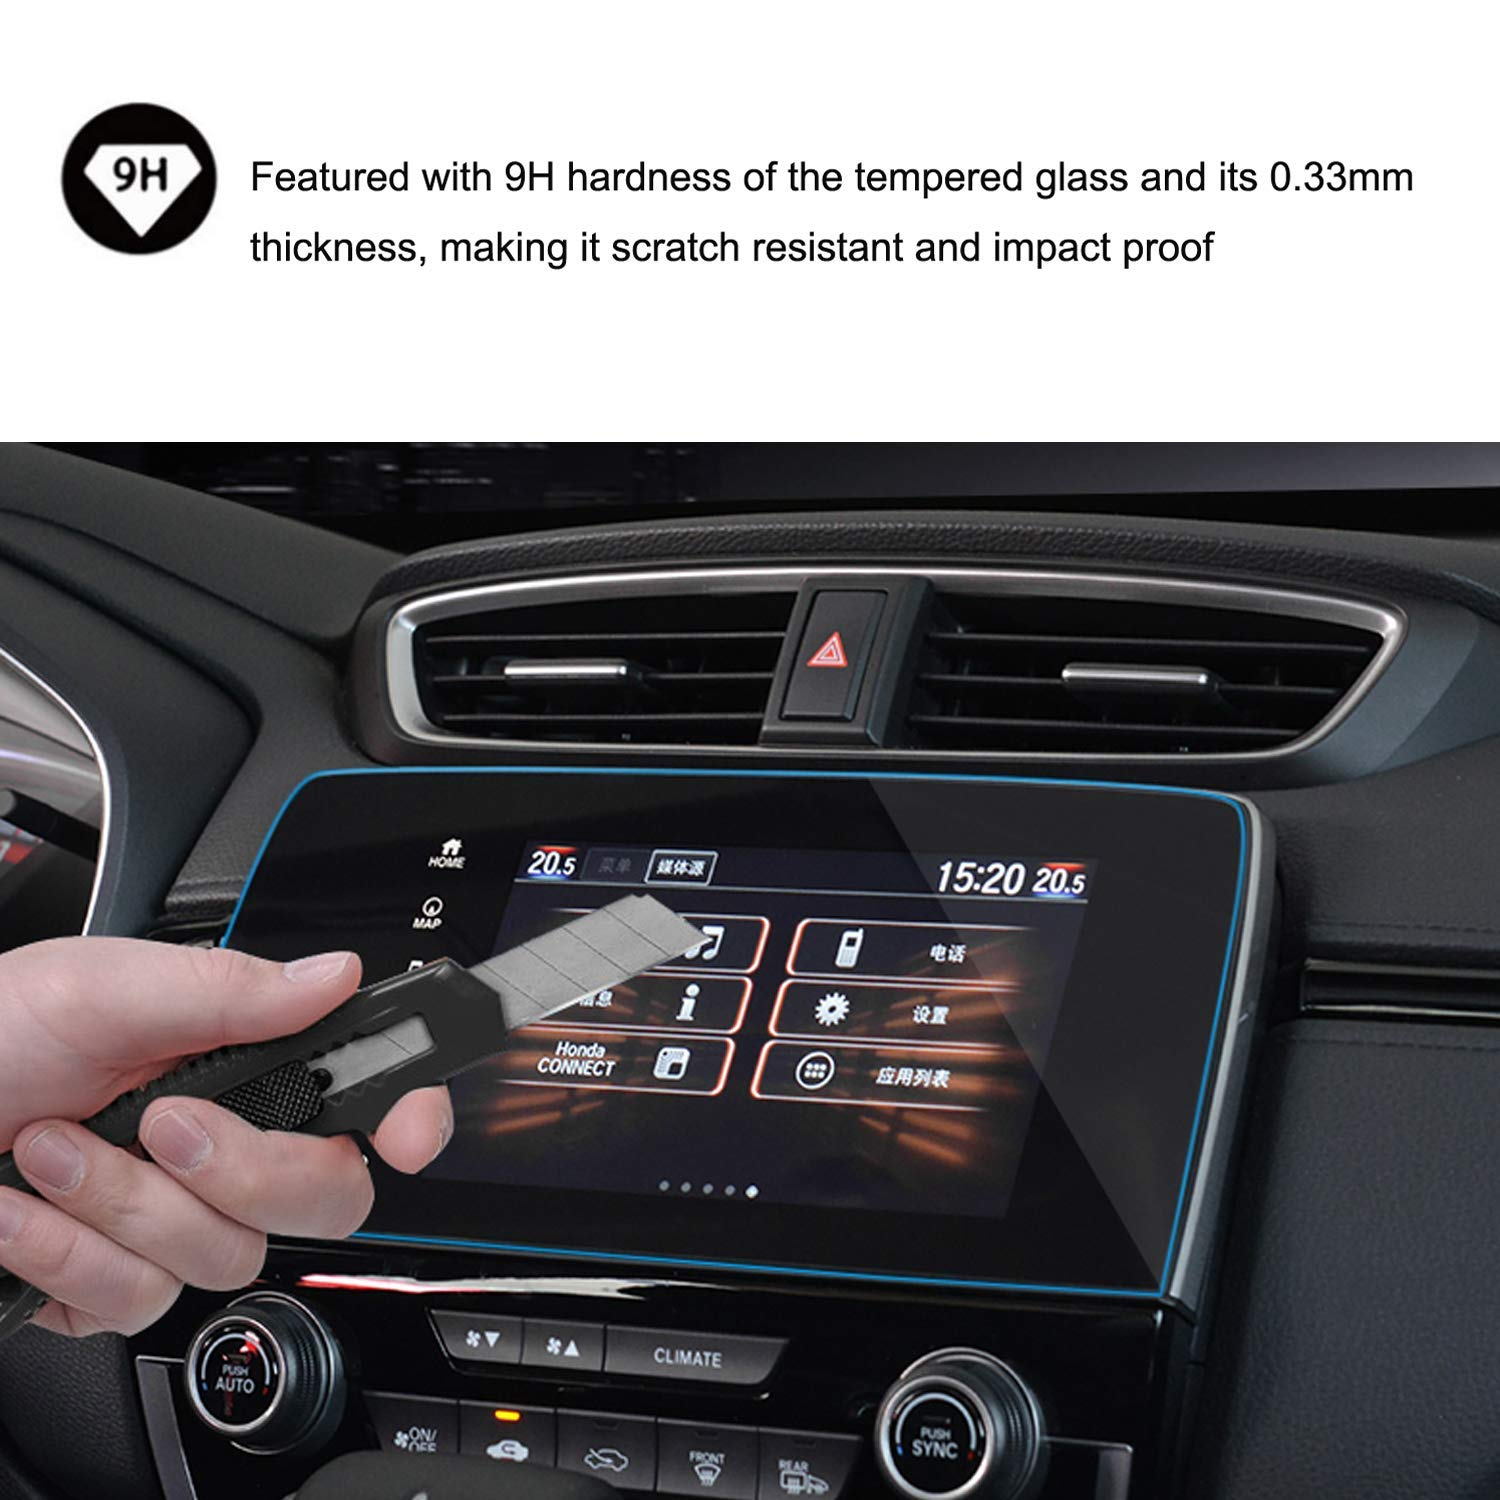 2017 2018 2019 Honda CRV EX EX-L Touring 7 Inch Car Navigation Screen Protector HiMoliwa Scratch-Resistant Ultra HD in-Dash Clear Tempered Glass Screen 9H Hardness 0.33mm